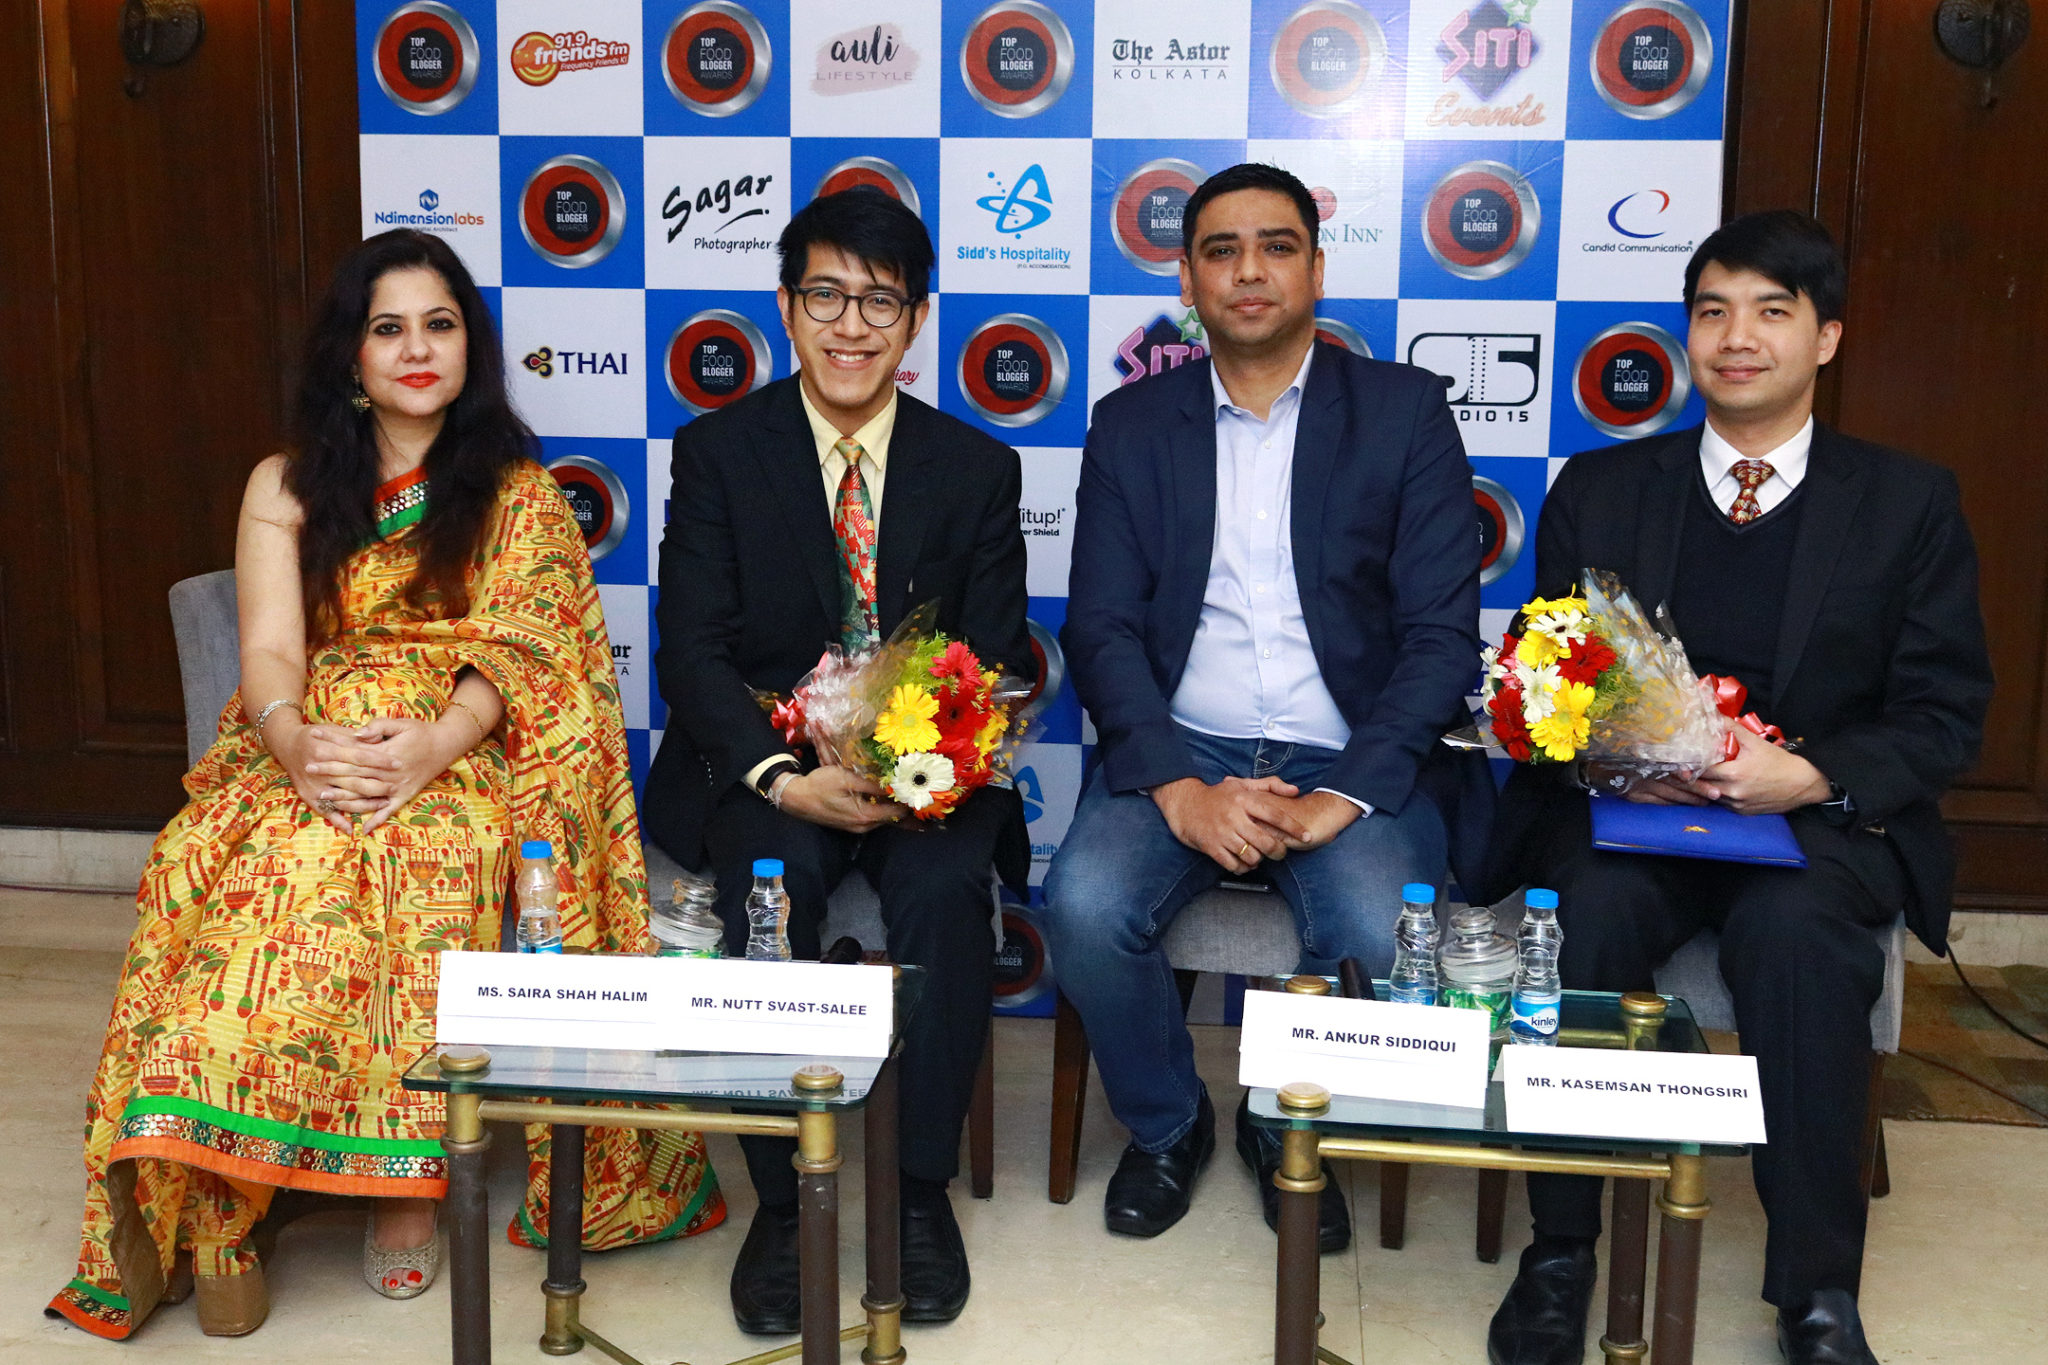 Top Food Bloggers Awards 2019 begins its second edition journey in Kolkata